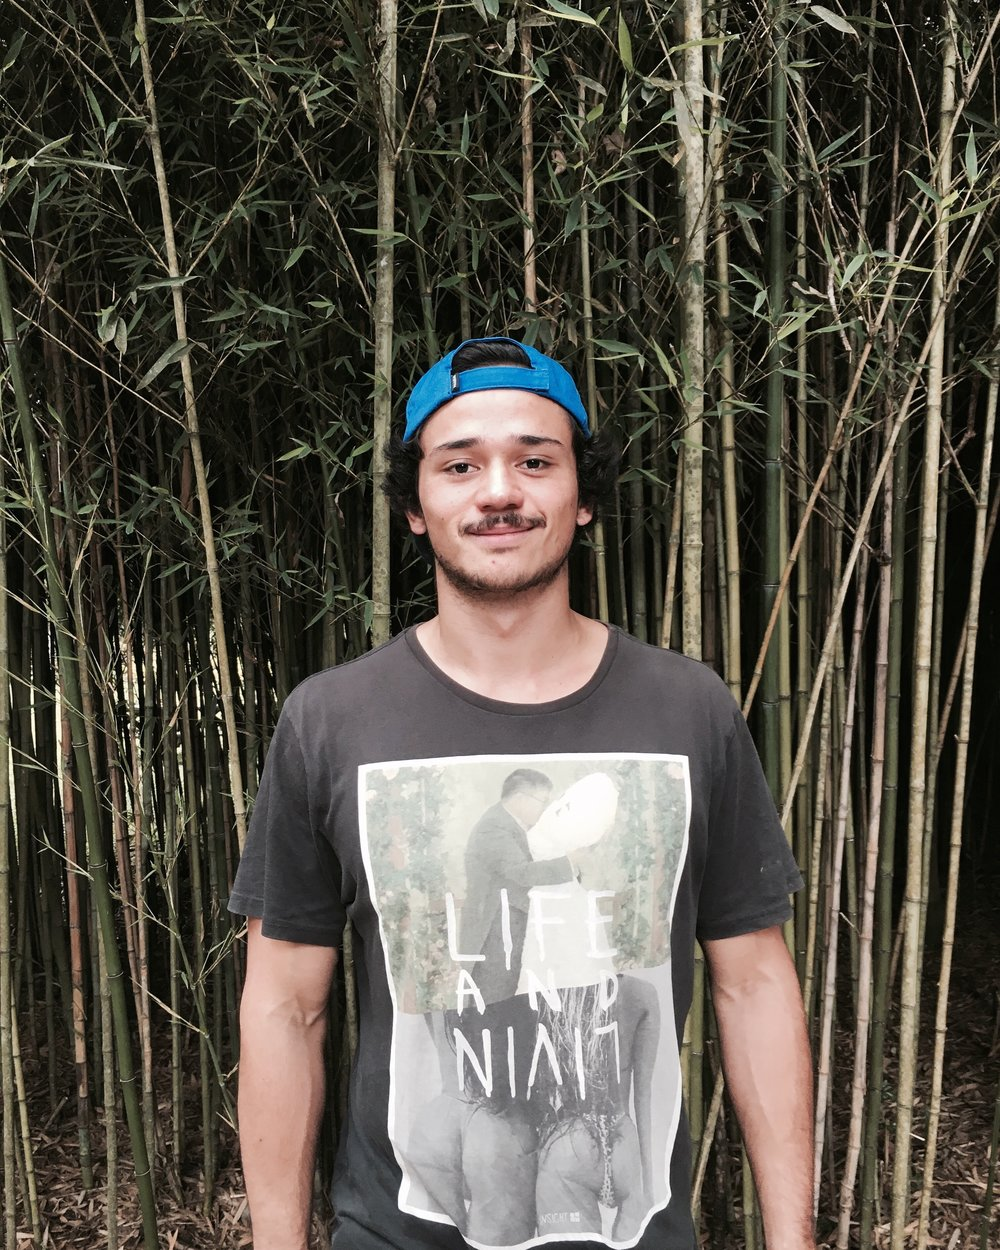 Sebastian in the bamboo forest.